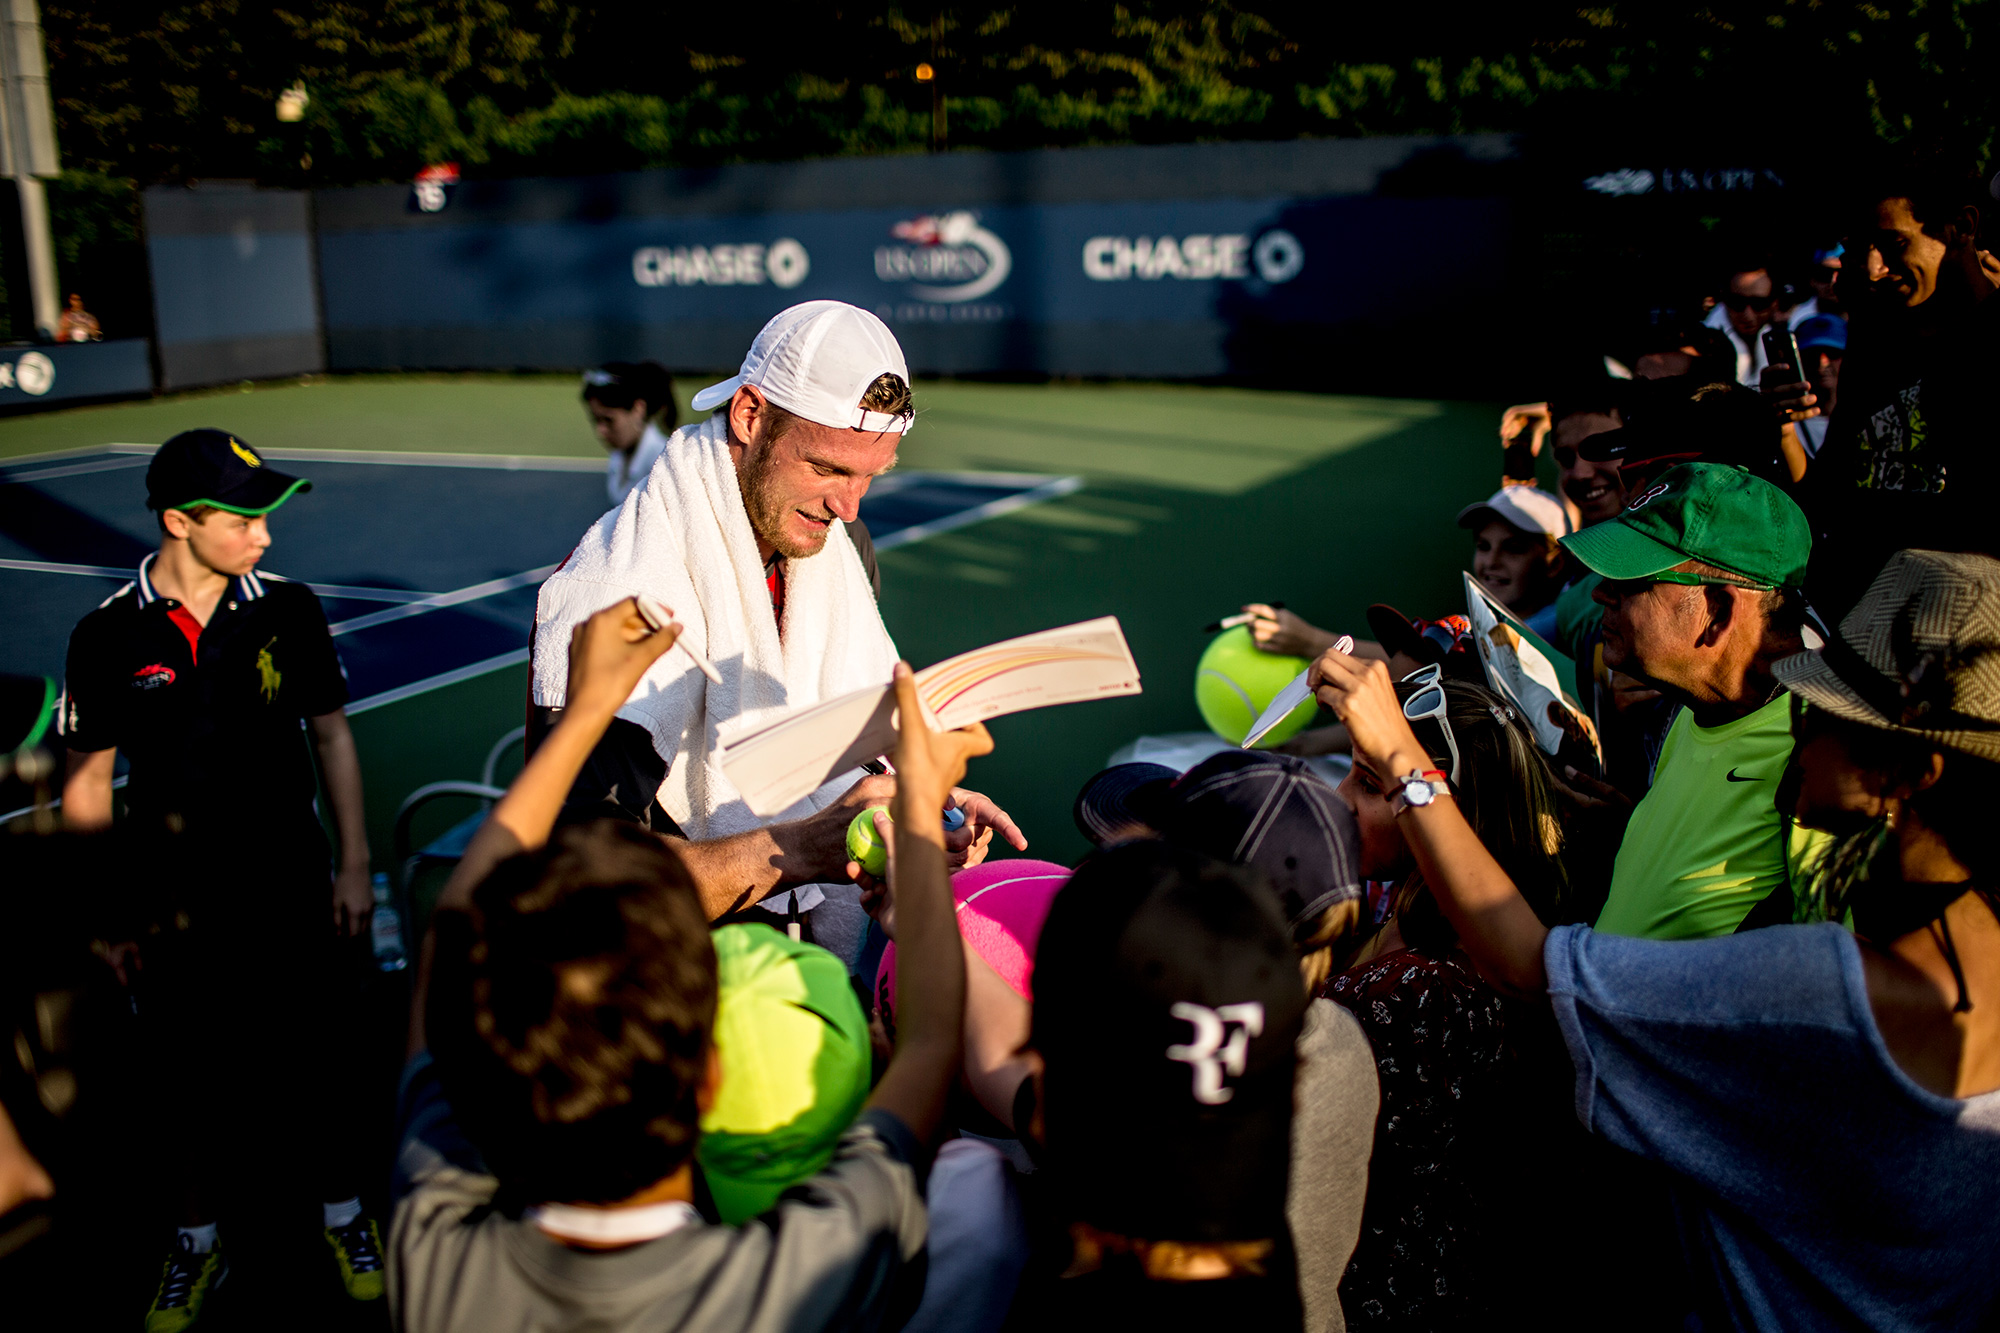 After a 6-3, 7-6 (5), 6-3 victory, Groth was surrounded by a half-dozen fans looking for an autograph.